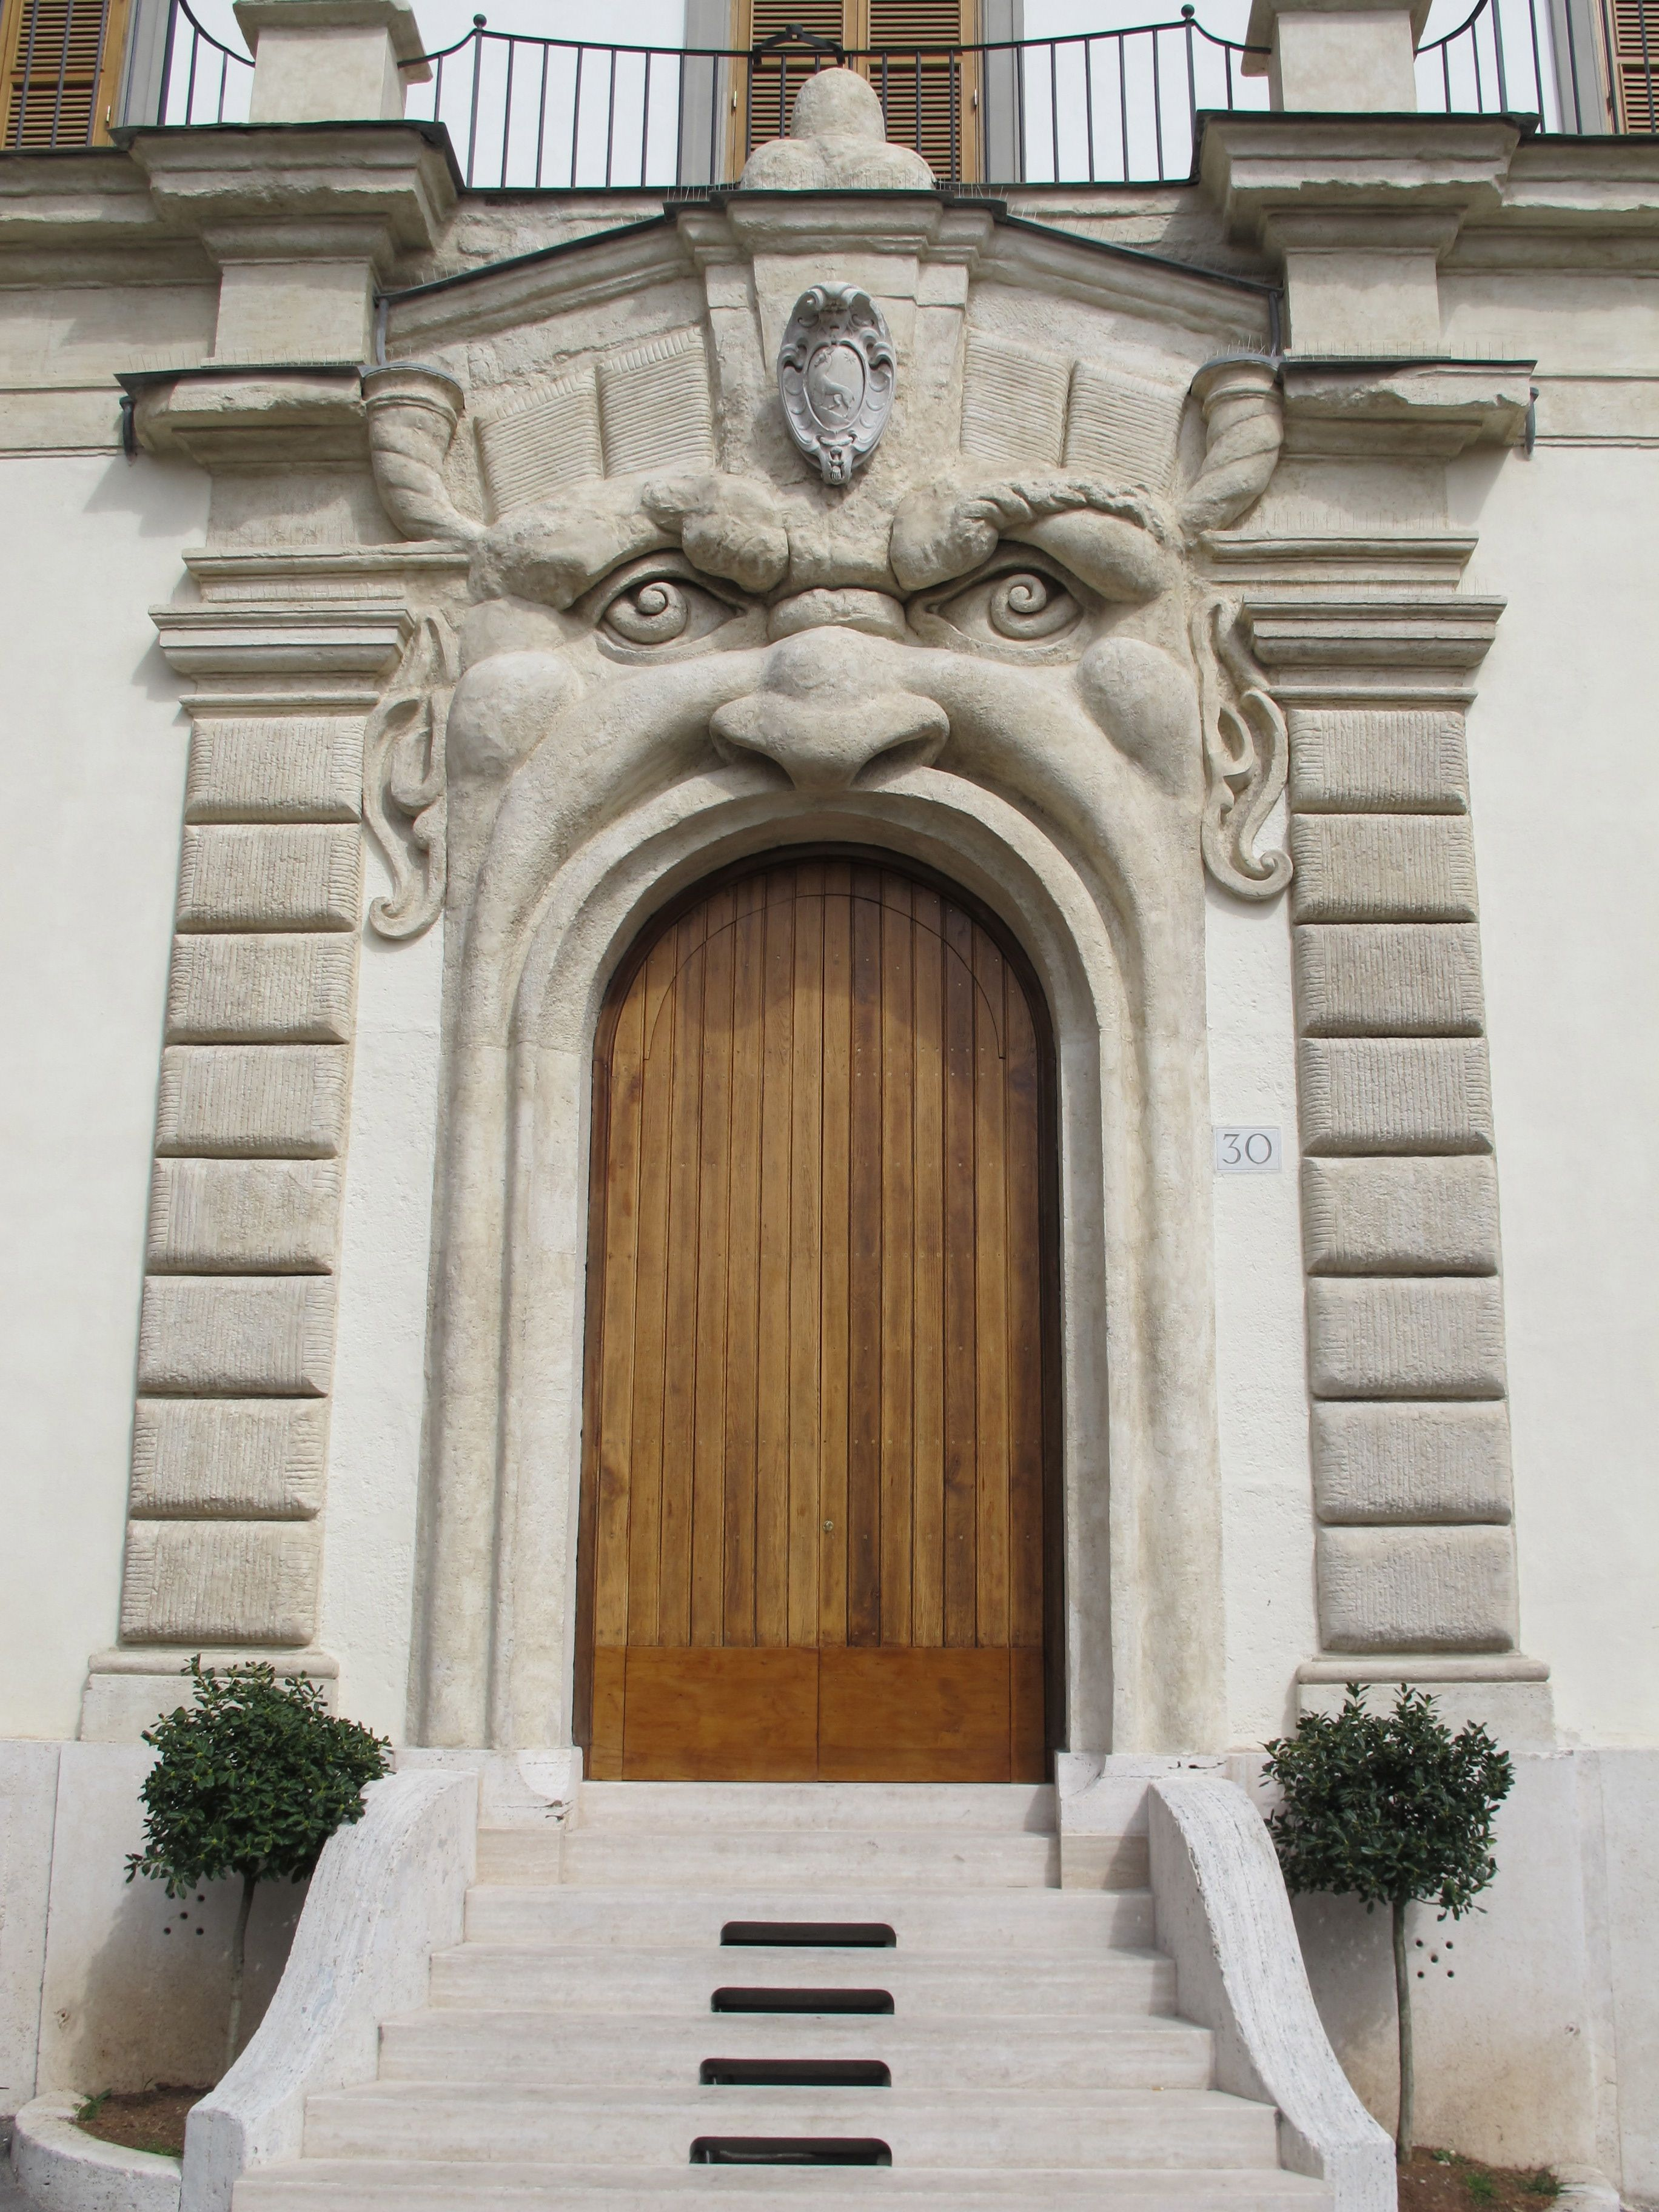 Rome - This is Palazzetto Zuccari, also known as Casa dei Mostri (House of the Monsters). door